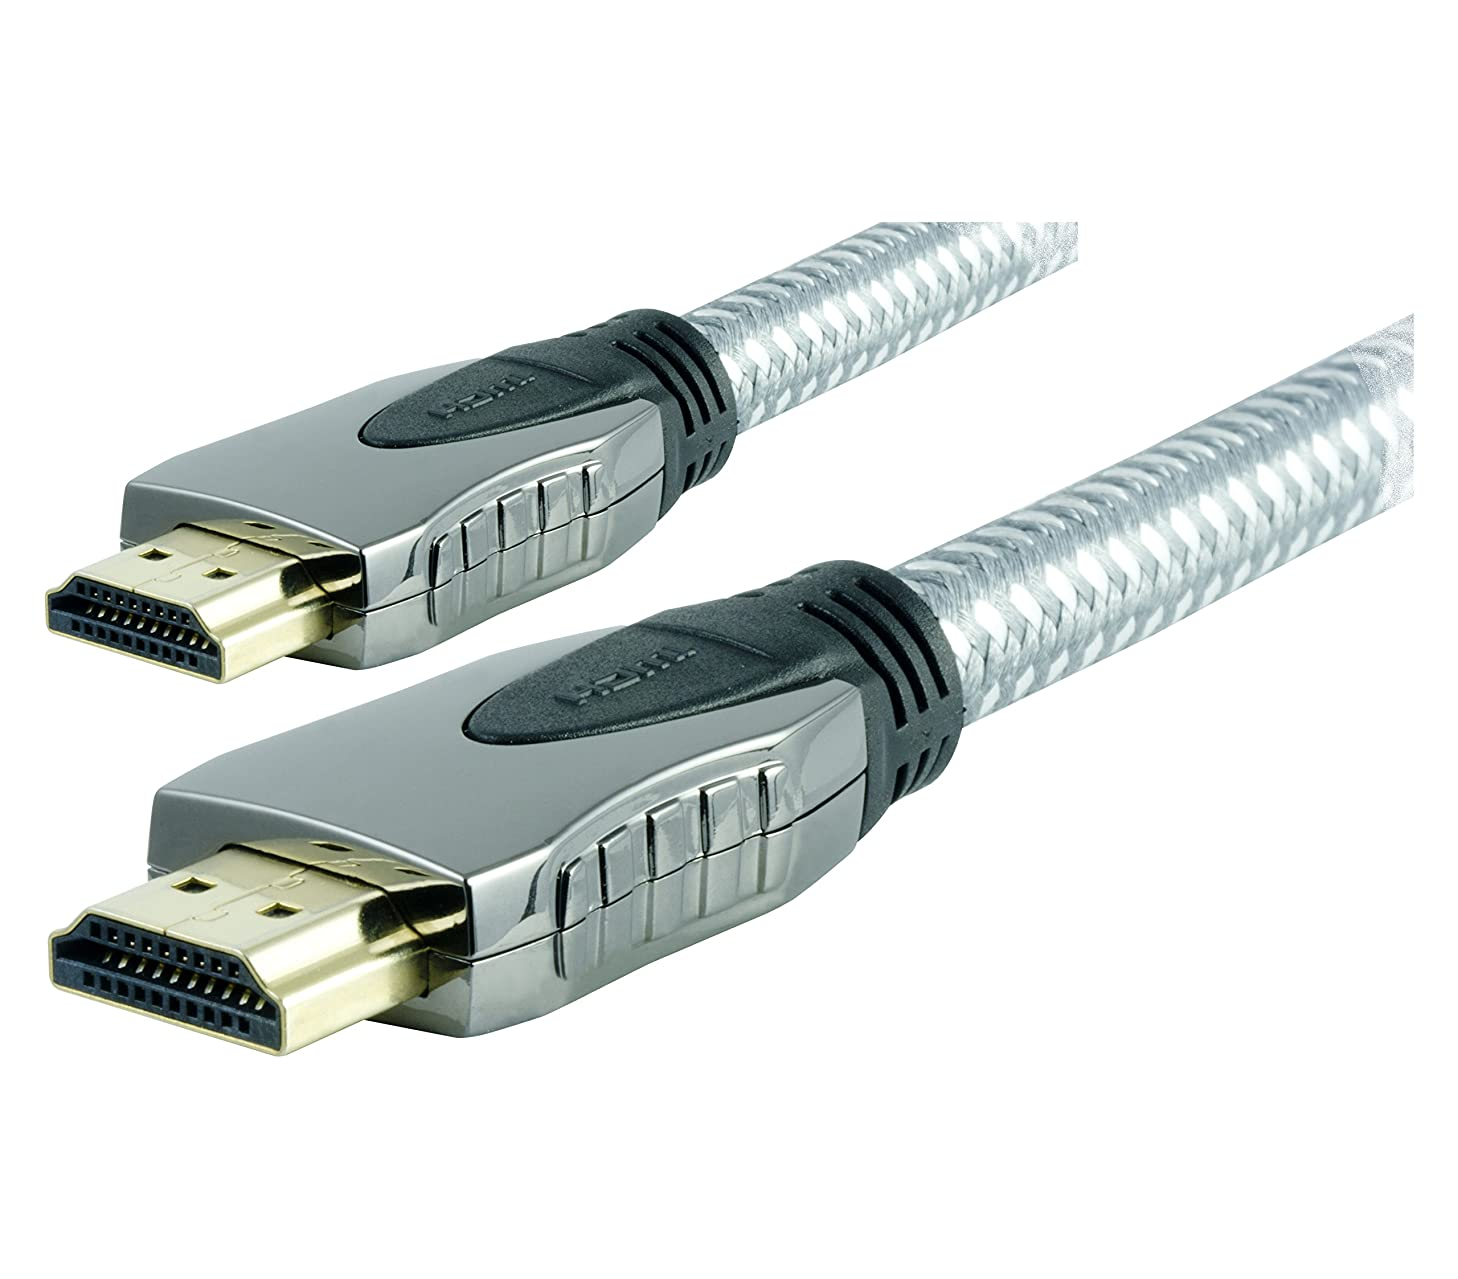 GE 12 ft. UltraPro High Speed HDMI Cable with Ethernet, Braided, 1080P Full HD, 4K Ultra HD, 3D Ready, 87675